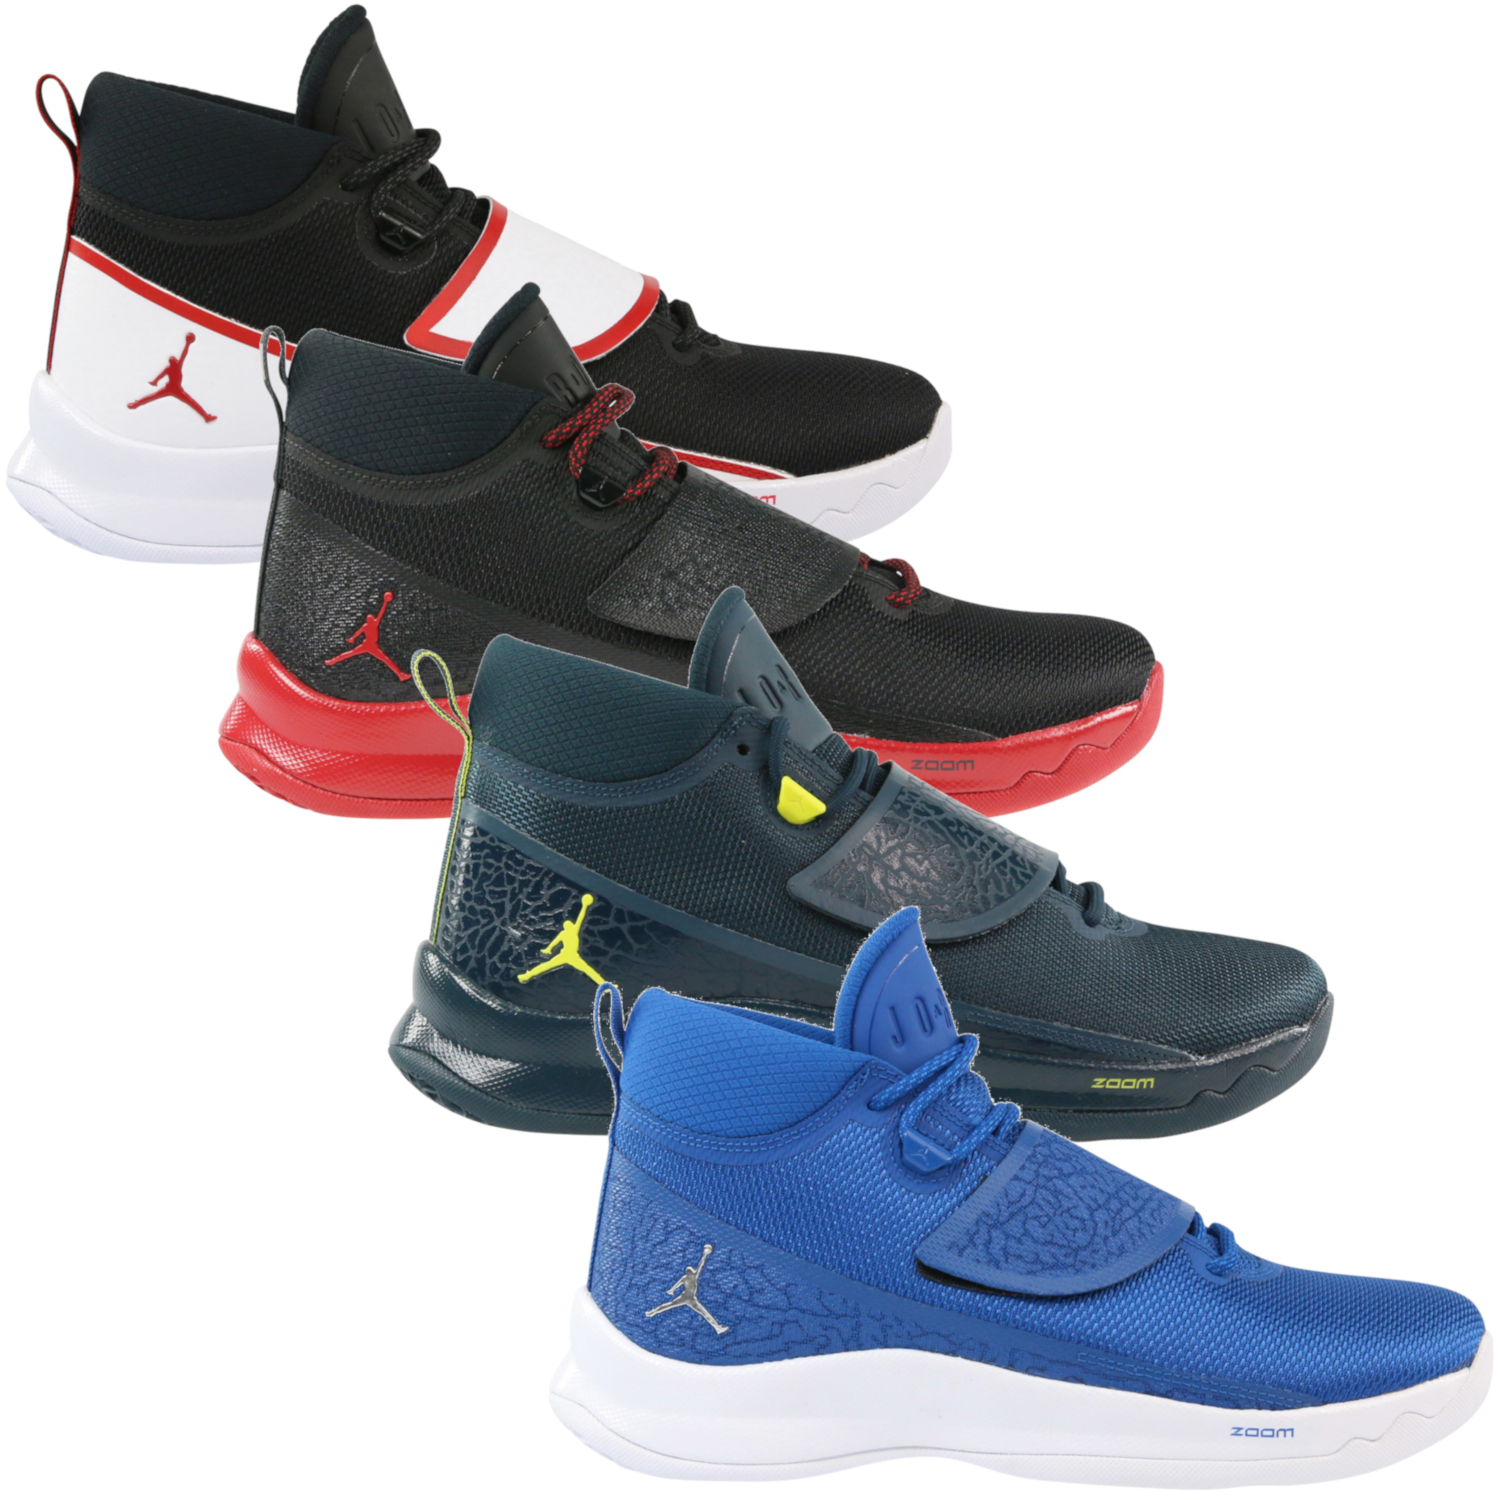 nike jordan super fly 5 po herren basketballschuhe schuhe. Black Bedroom Furniture Sets. Home Design Ideas